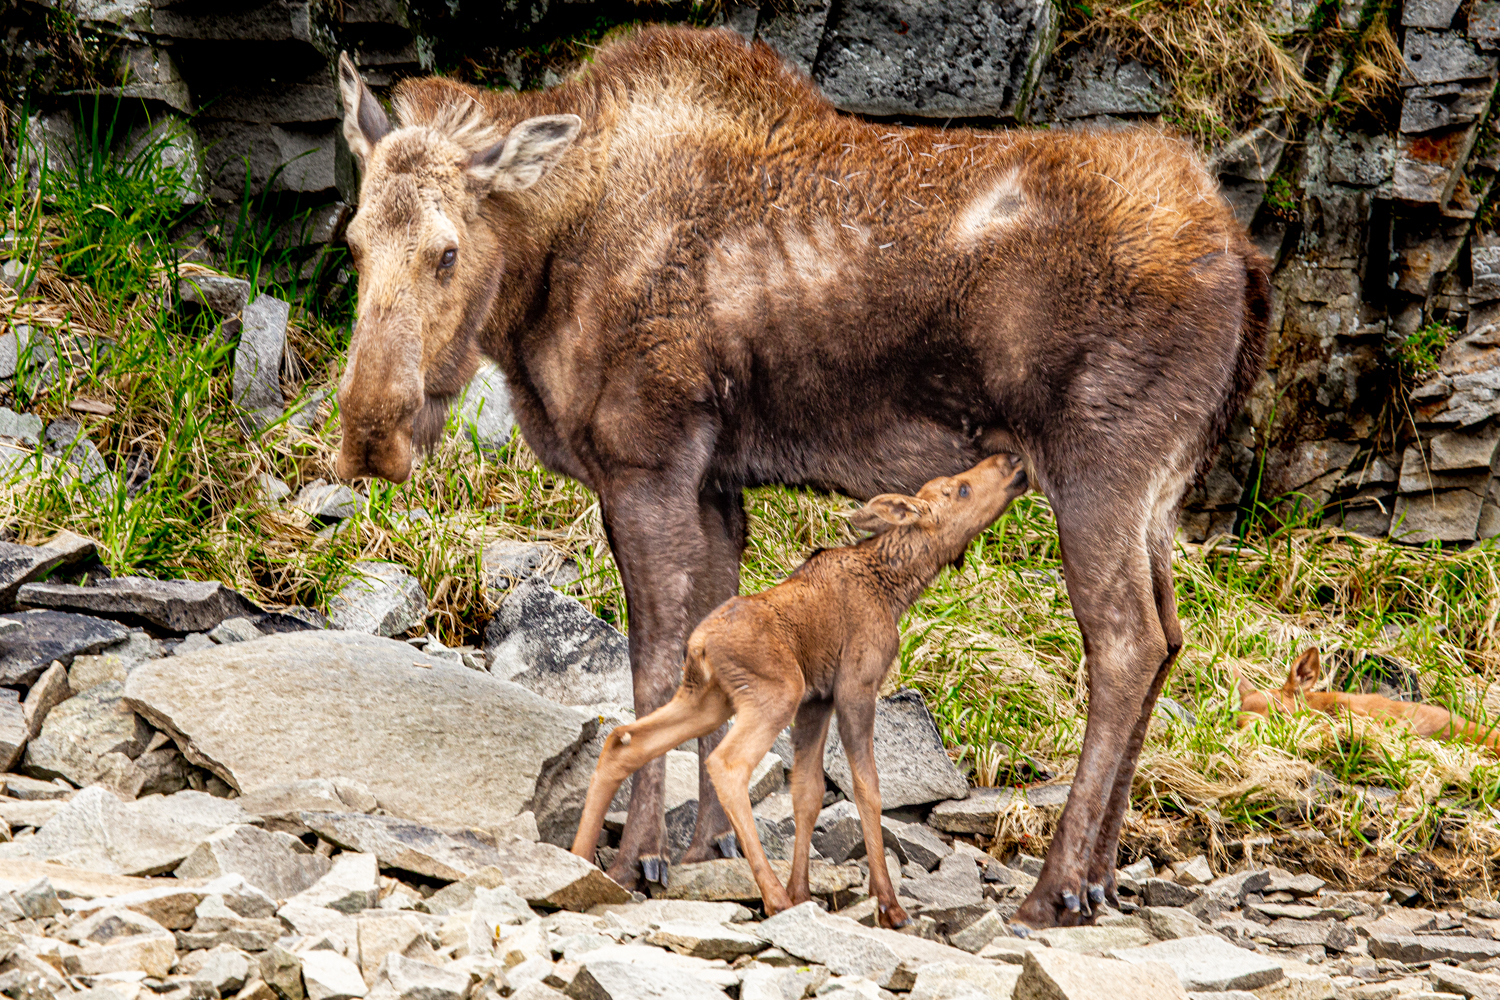 Nursing moose calf and mother.